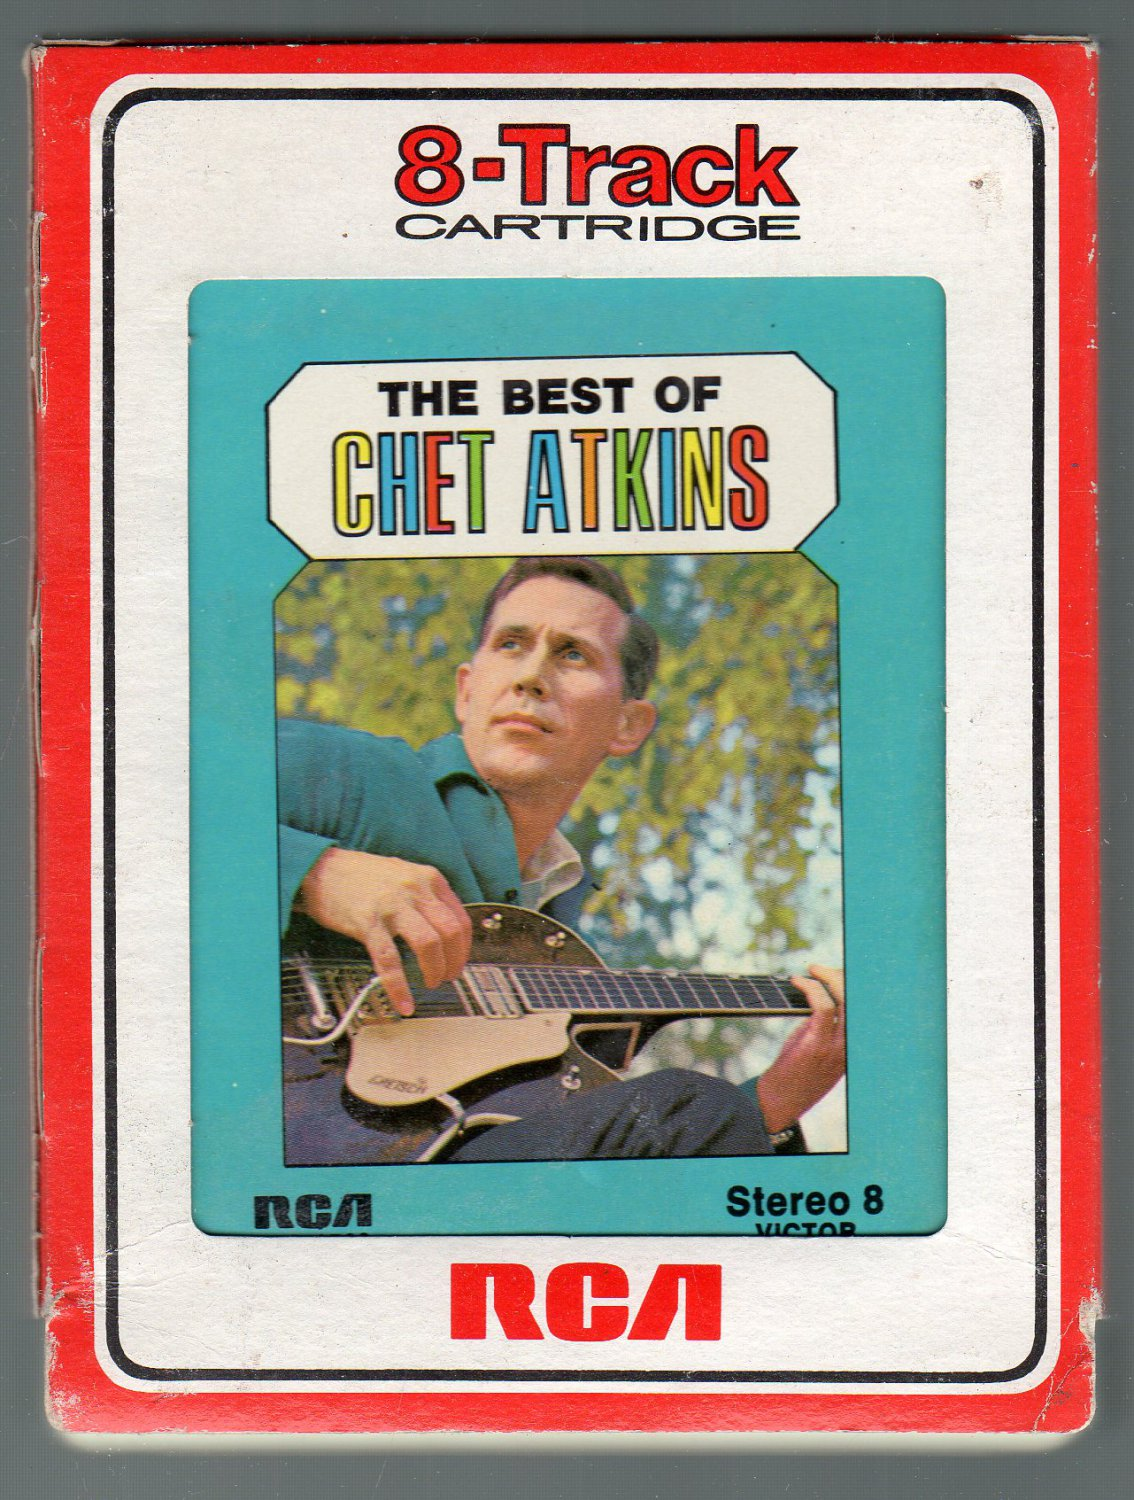 Chet Atkins - The Best Of RCA 8-track tape